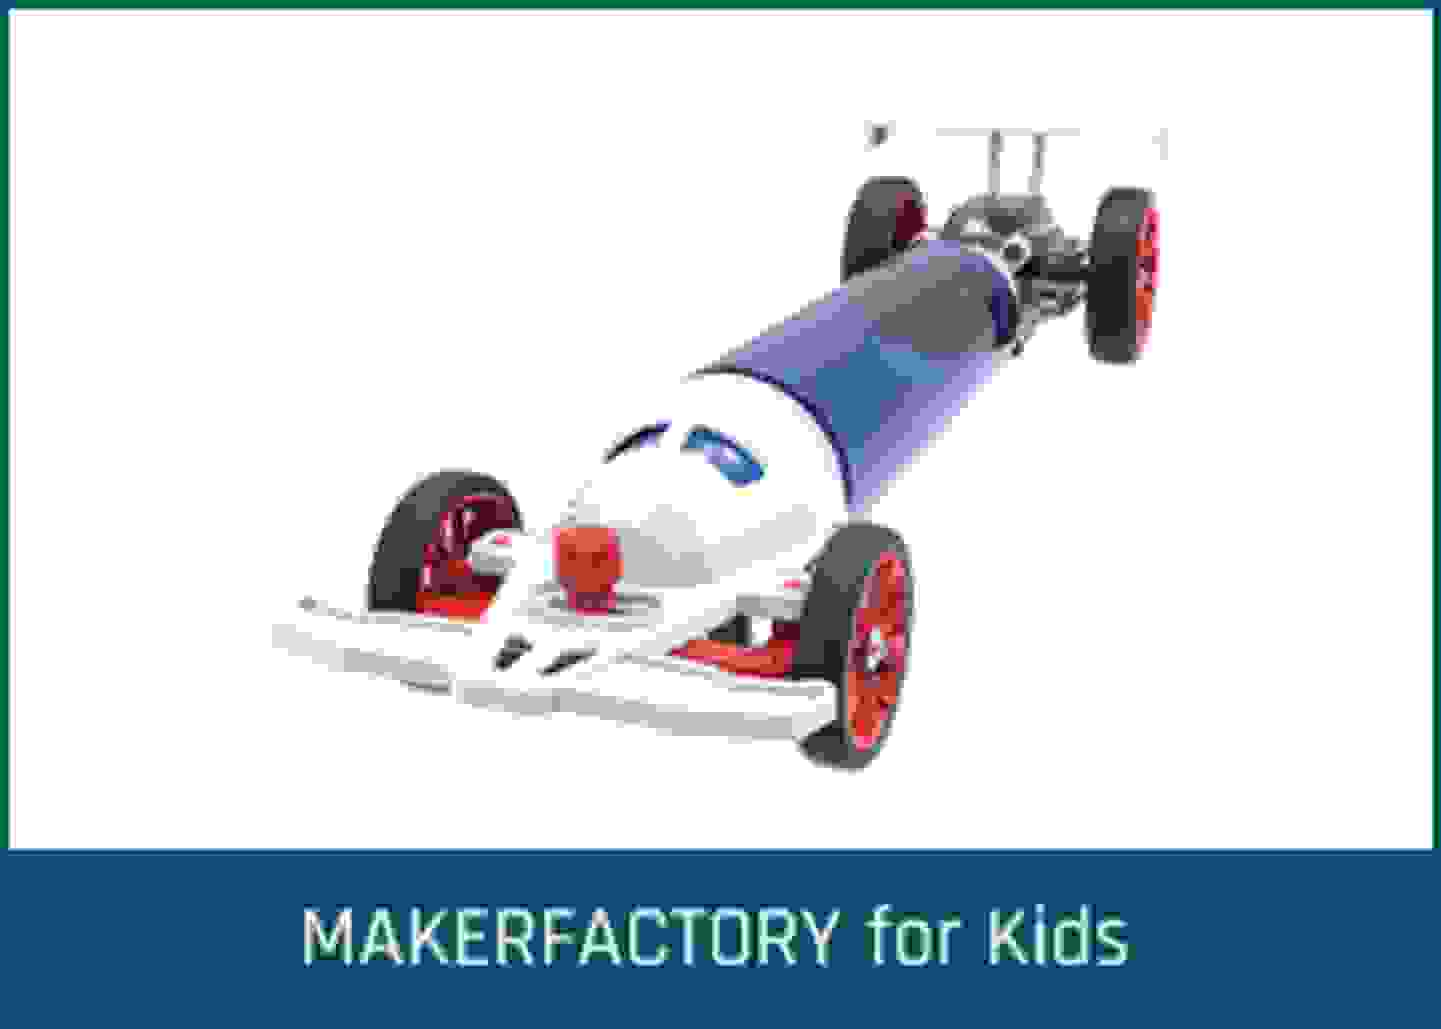 MAKERFACTORY For Kids